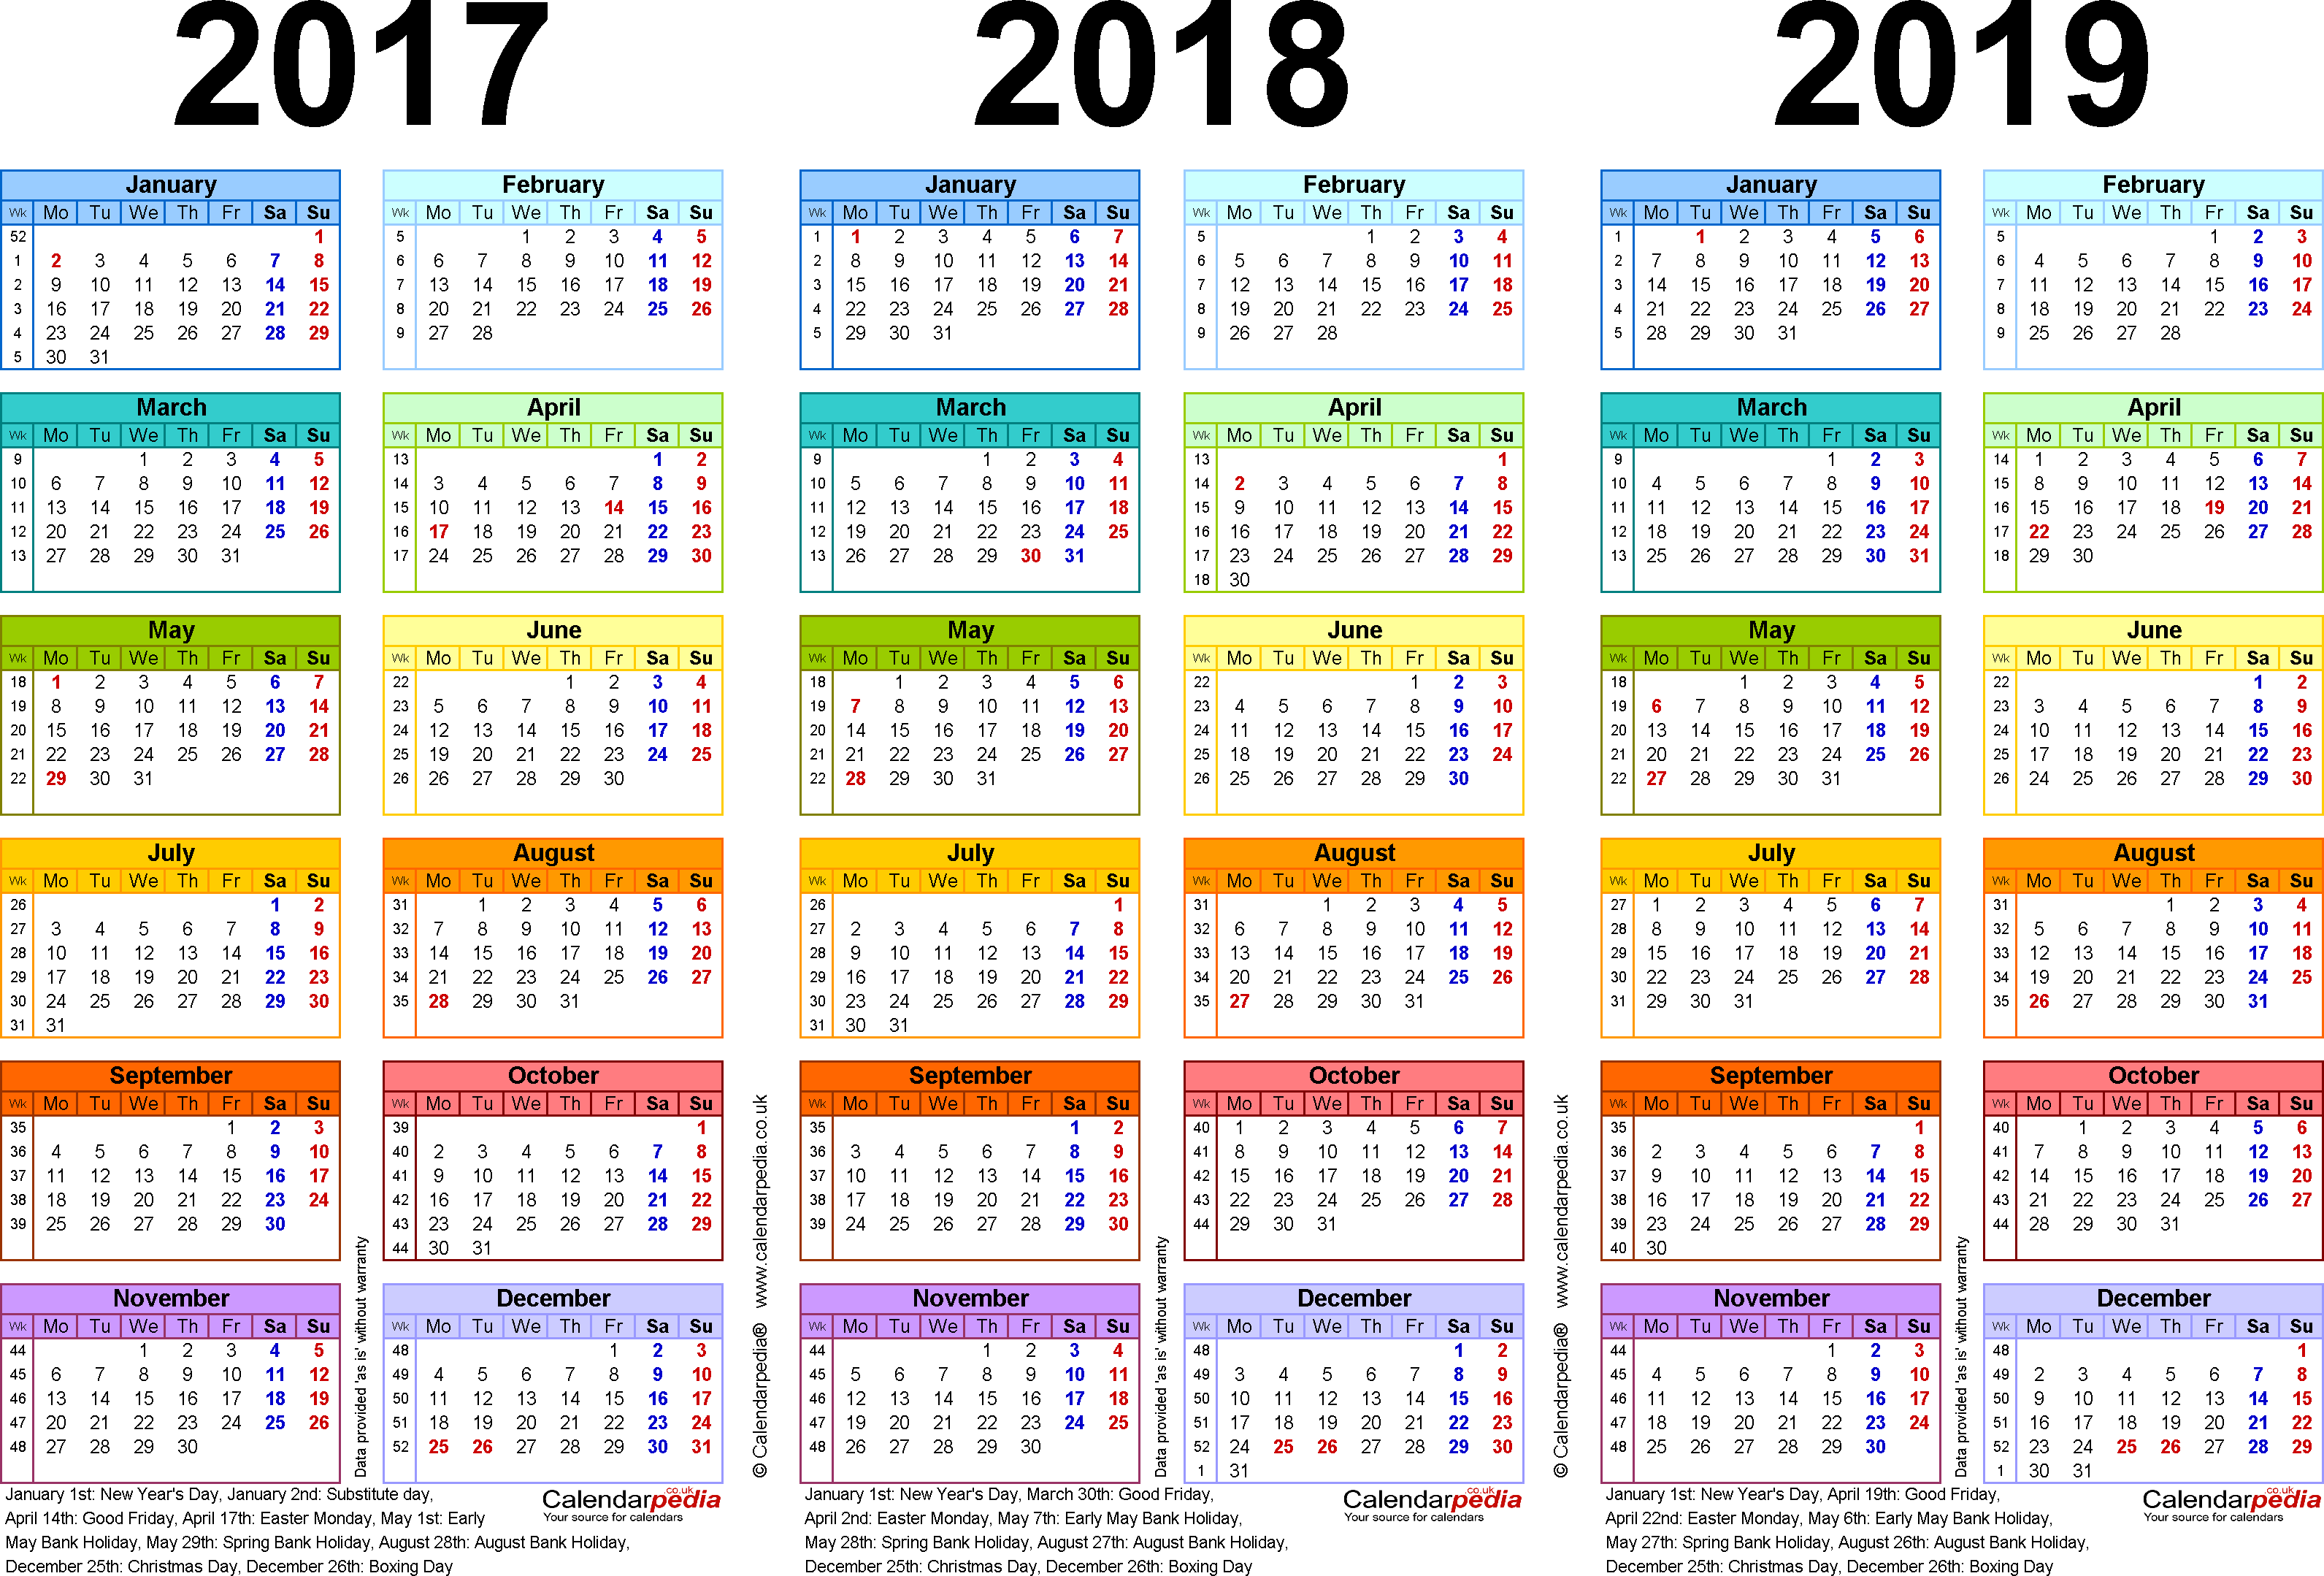 Template 1: Word template for three year calendar 2017-2019 in colour (landscape orientation, 1 page, A4)